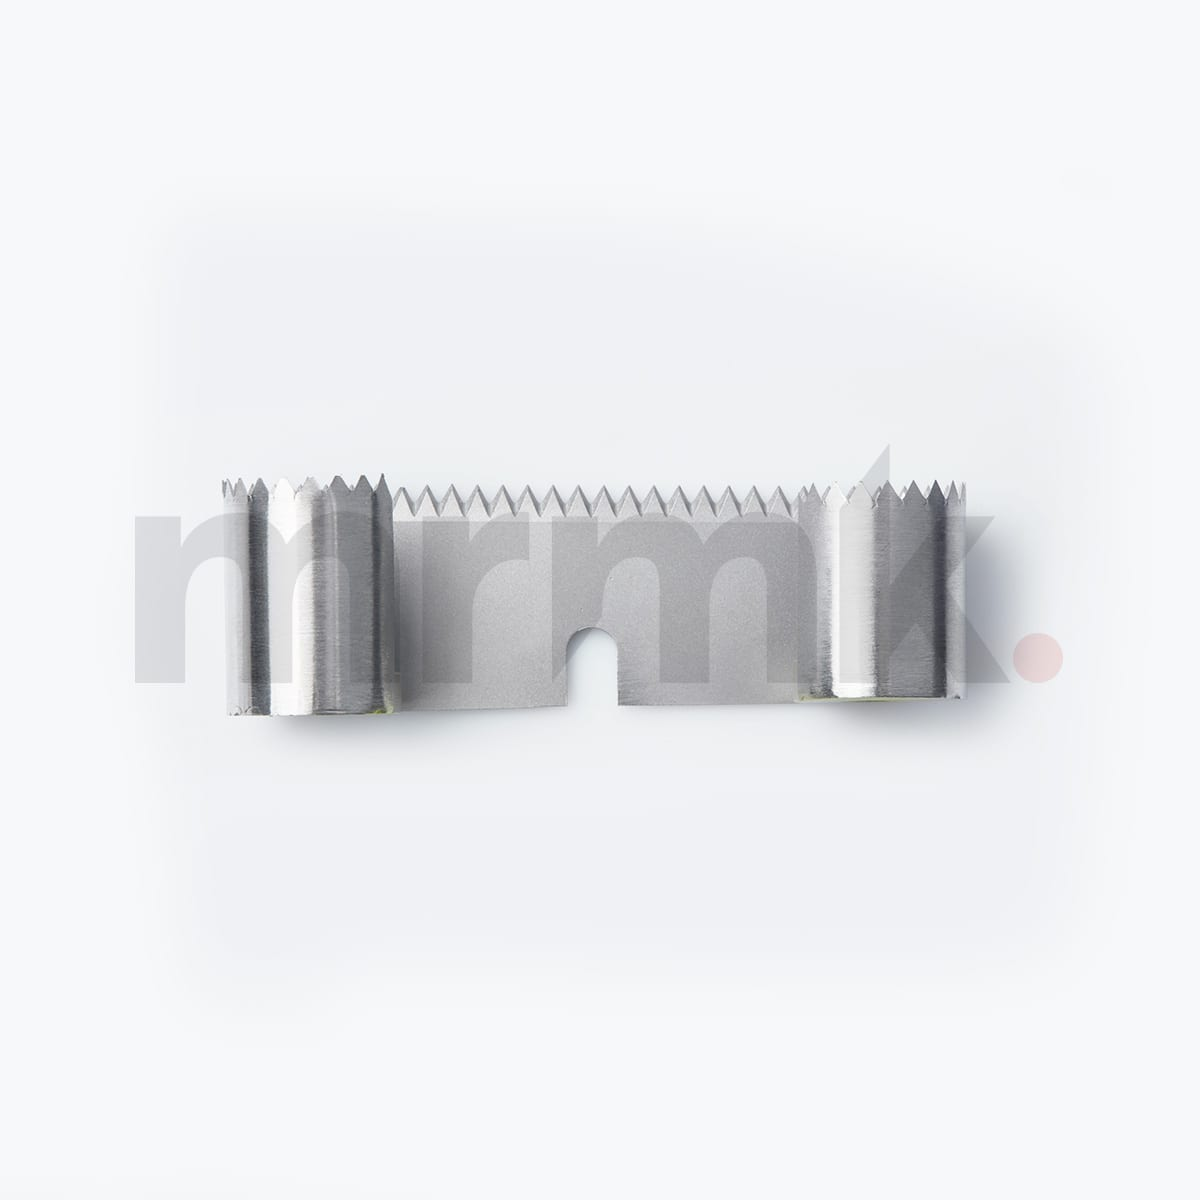 Formed Cutter